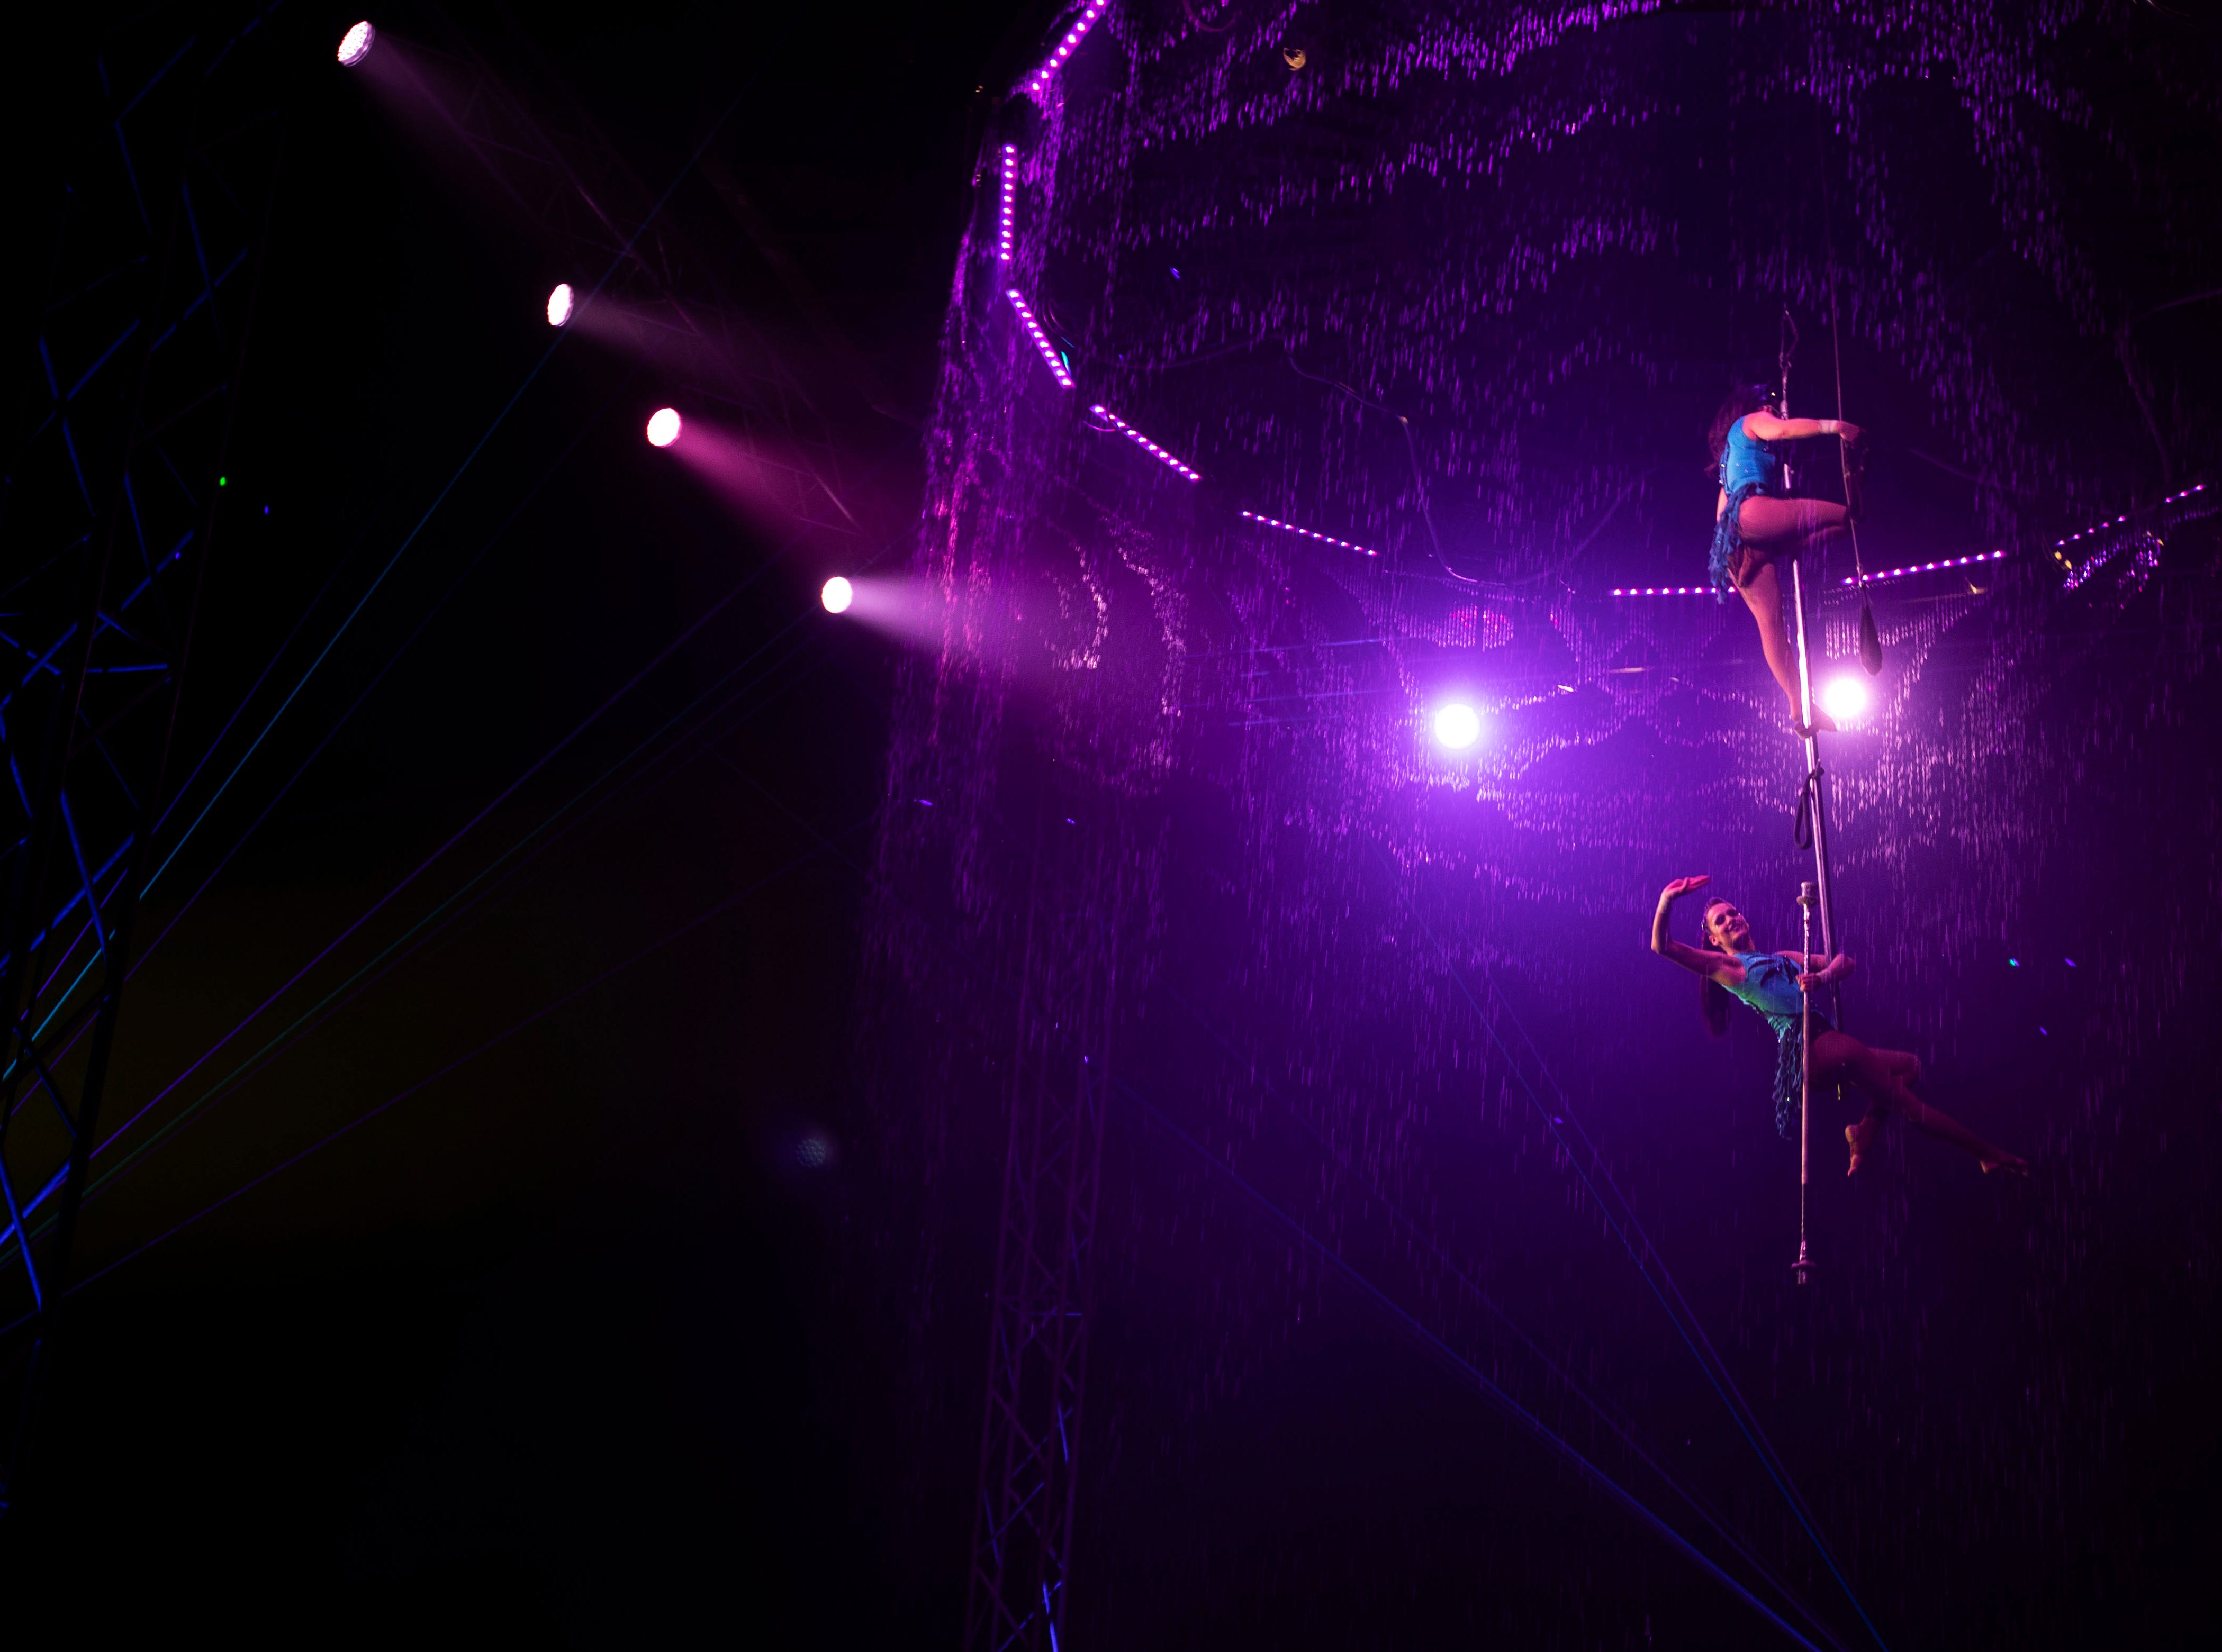 Cirque Italia, a water circus, is in Corvada Tennessee through Sunday Nov., 8, 2018. The circus is held on a stage confined by water fountains from a 35,000 gallon tank.